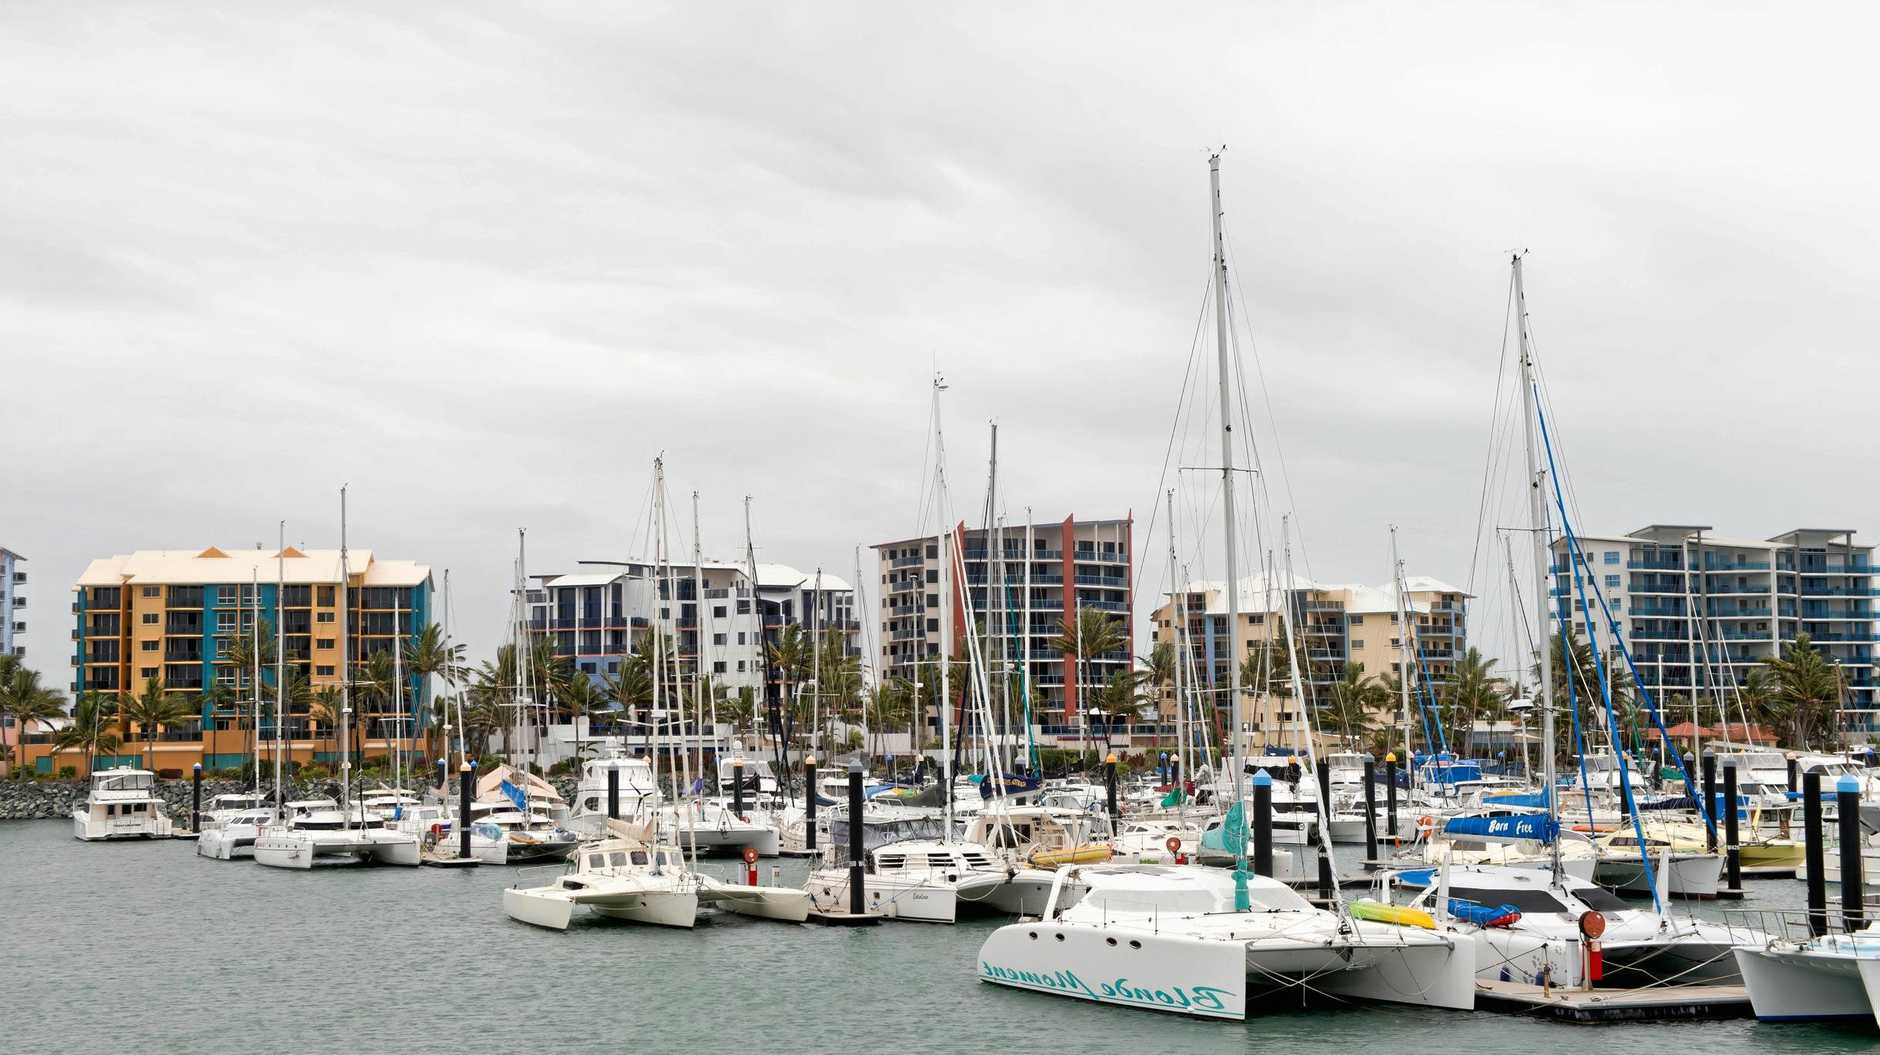 MARINA SHINES: Mackay Marina will once again be the entry point for the World Atlantic Rally for Cruisers this July.